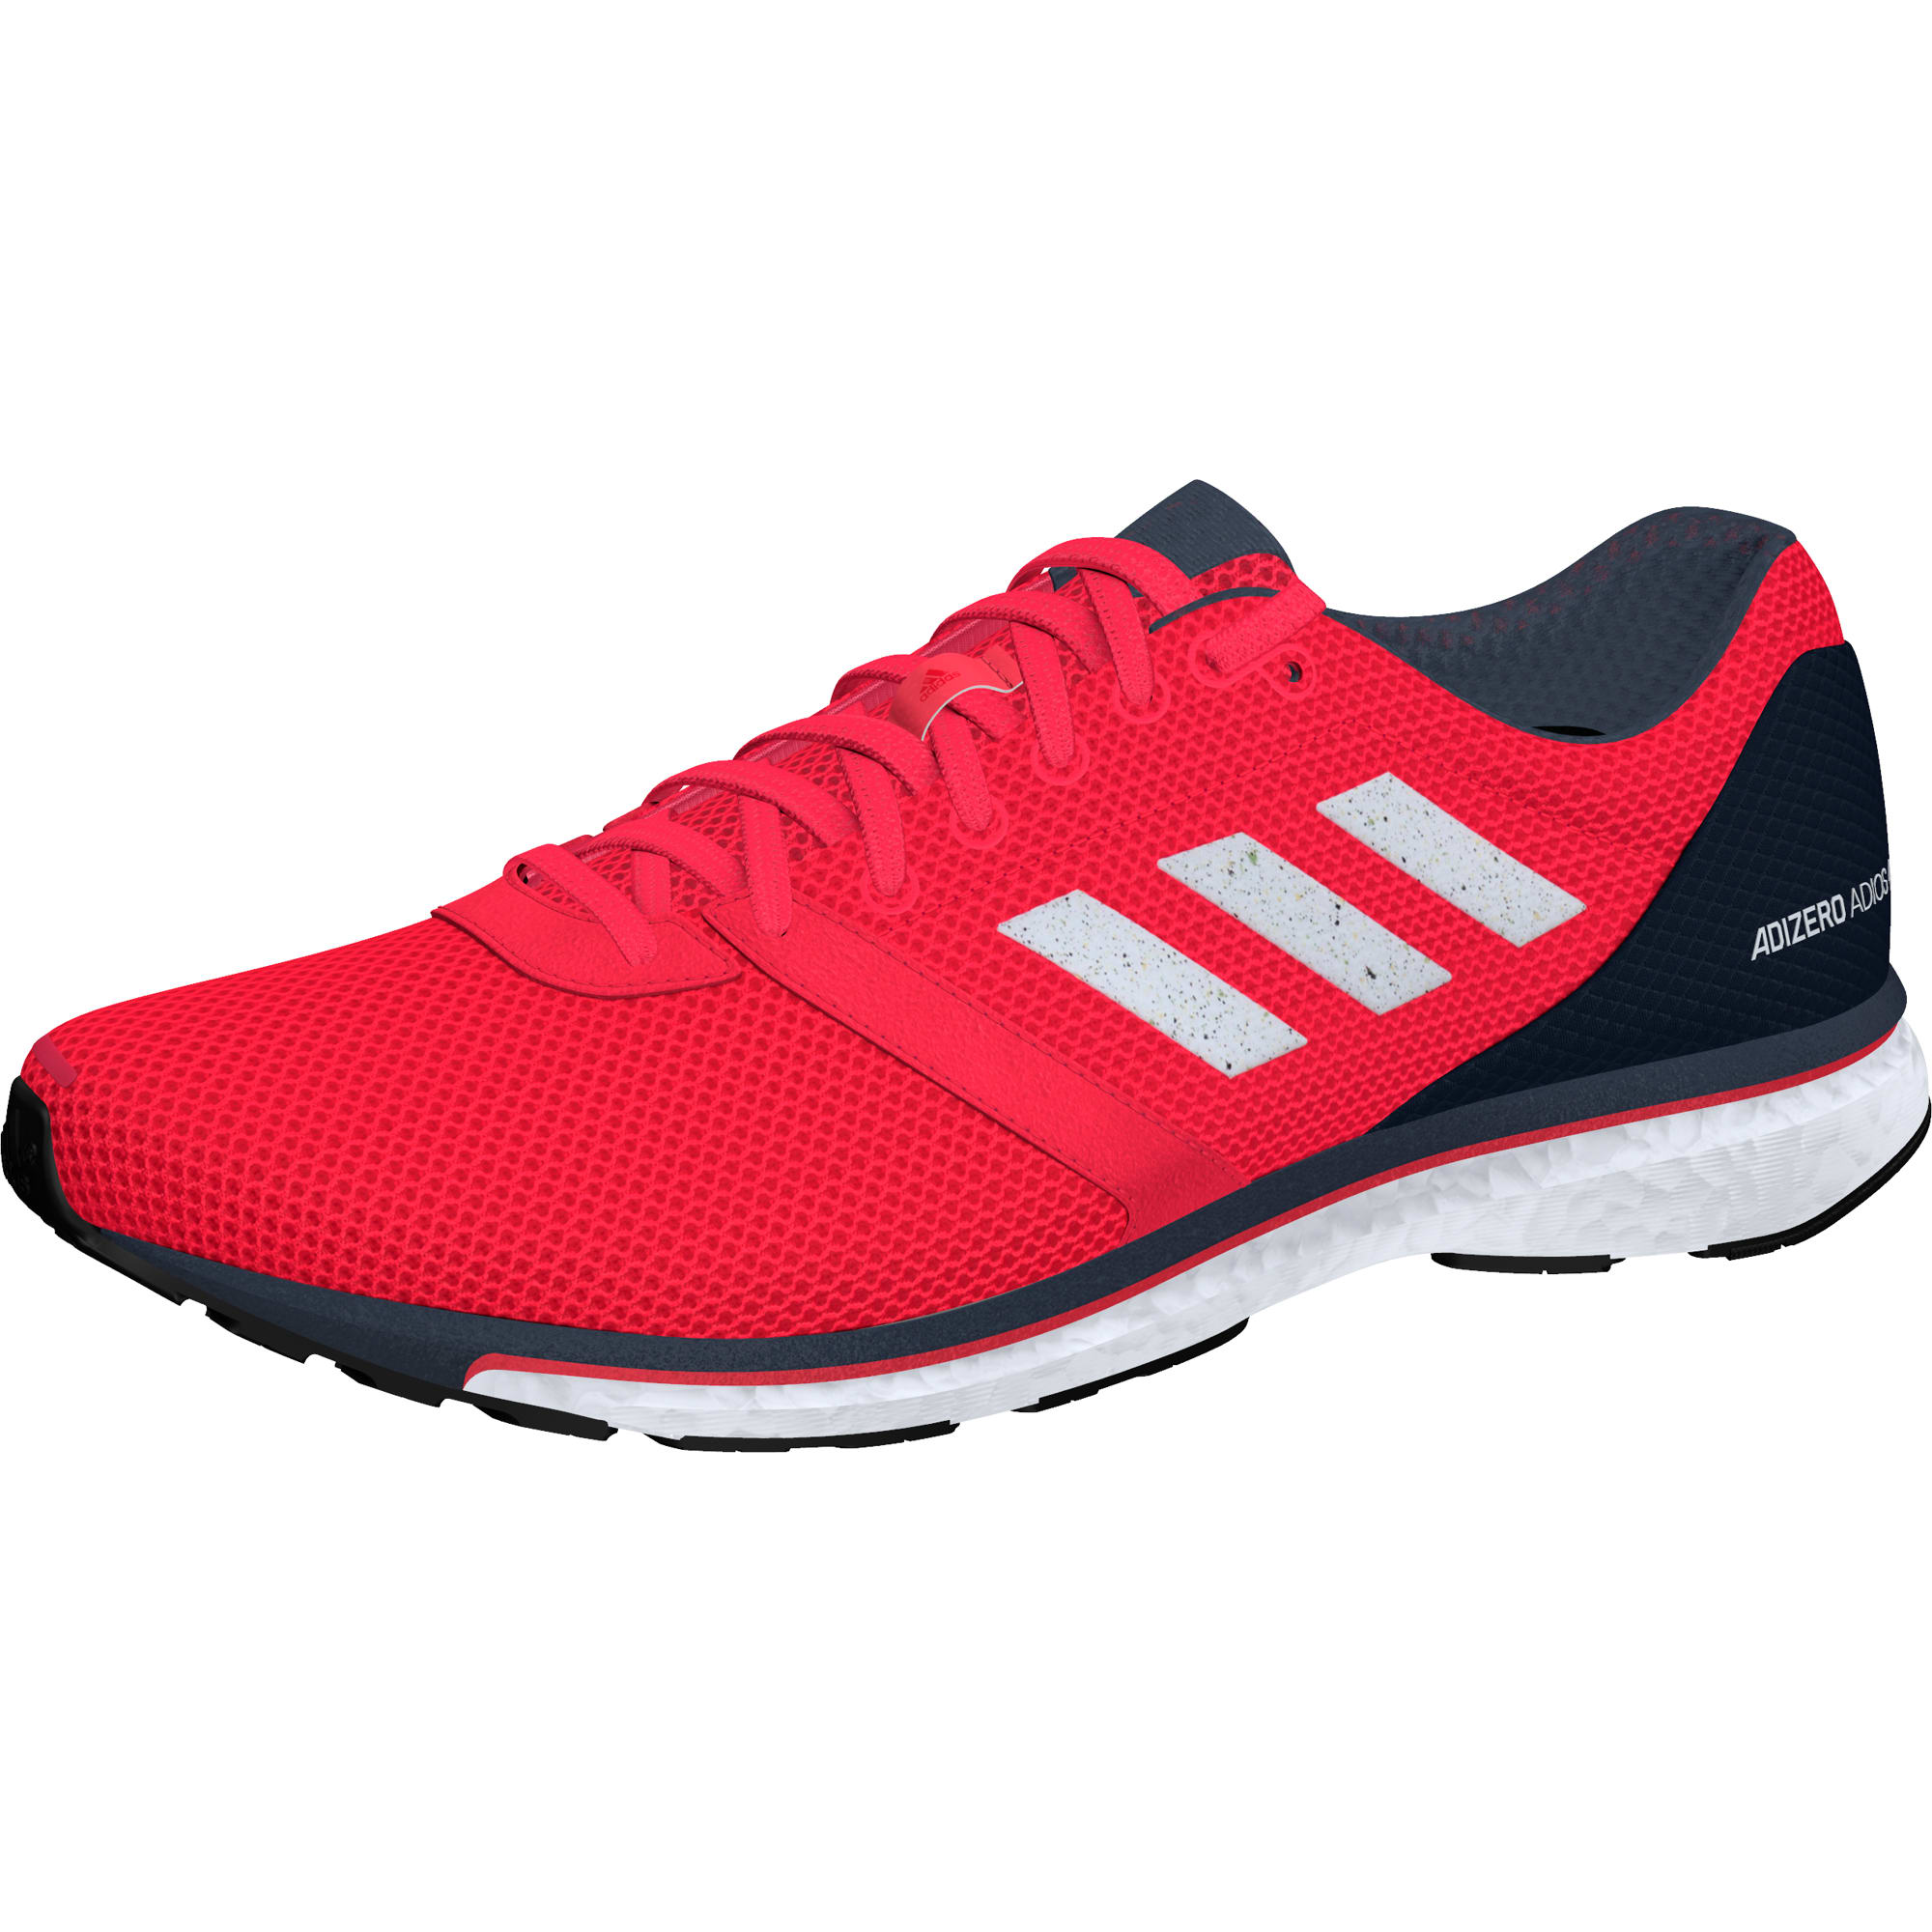 timeless design 27832 0579c Men's Adizero Adios 4